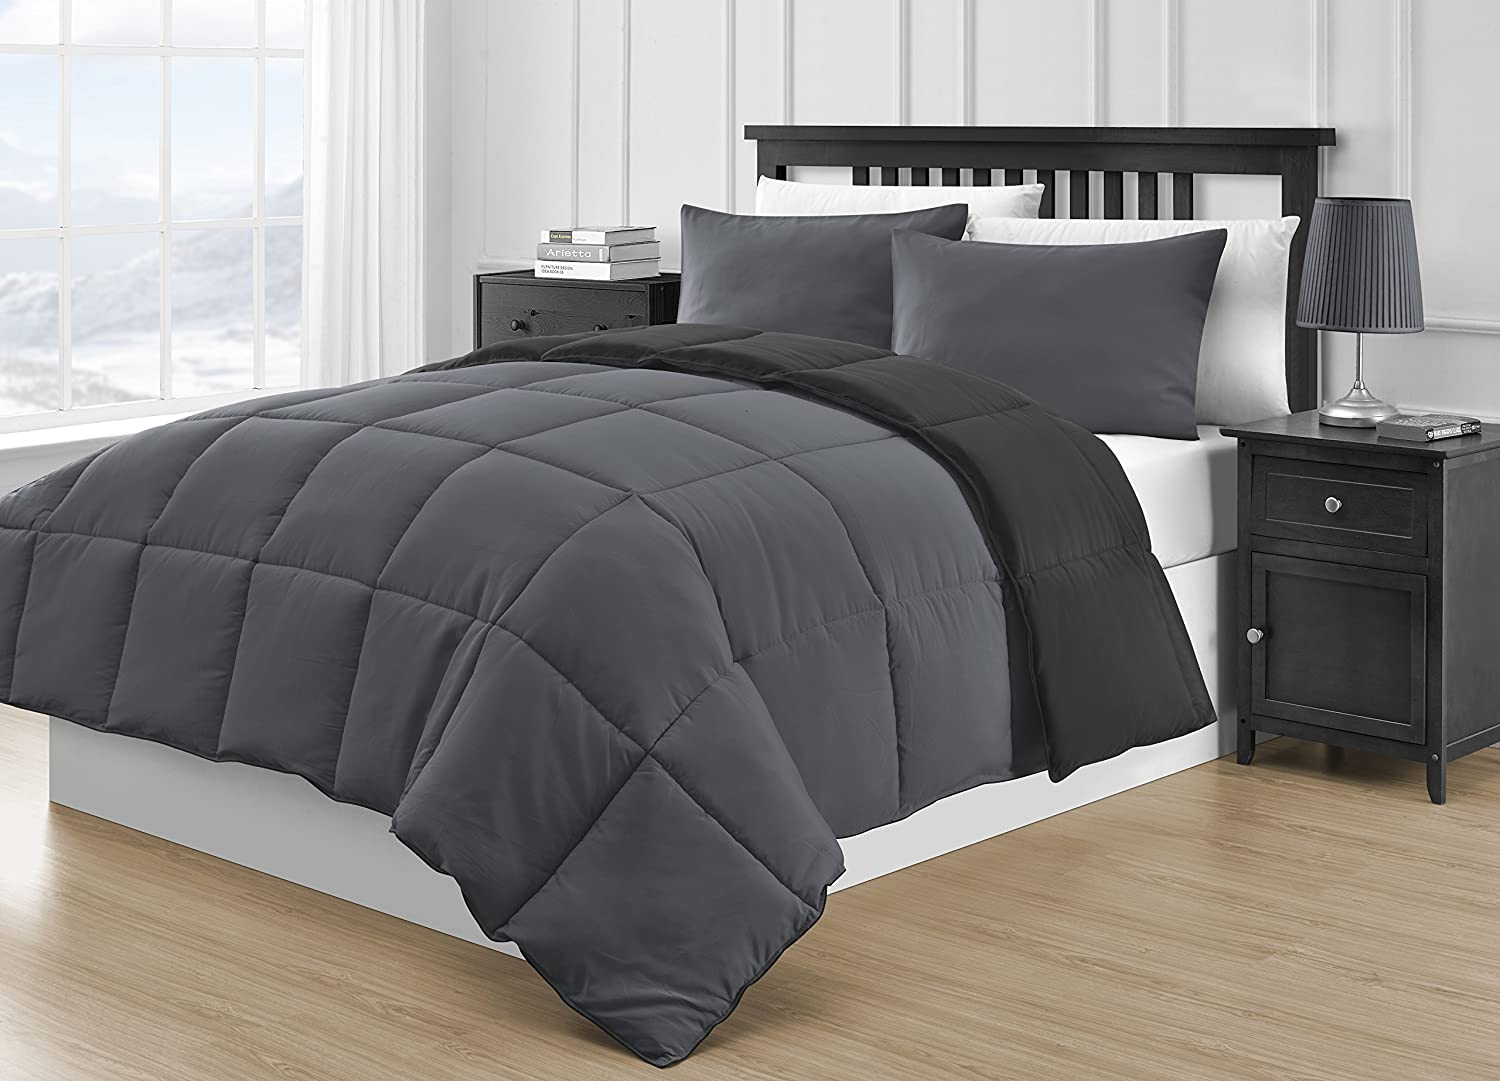 P&R Bedding Reversible Microfiber Black & Gray 3-Piece Comforter Set